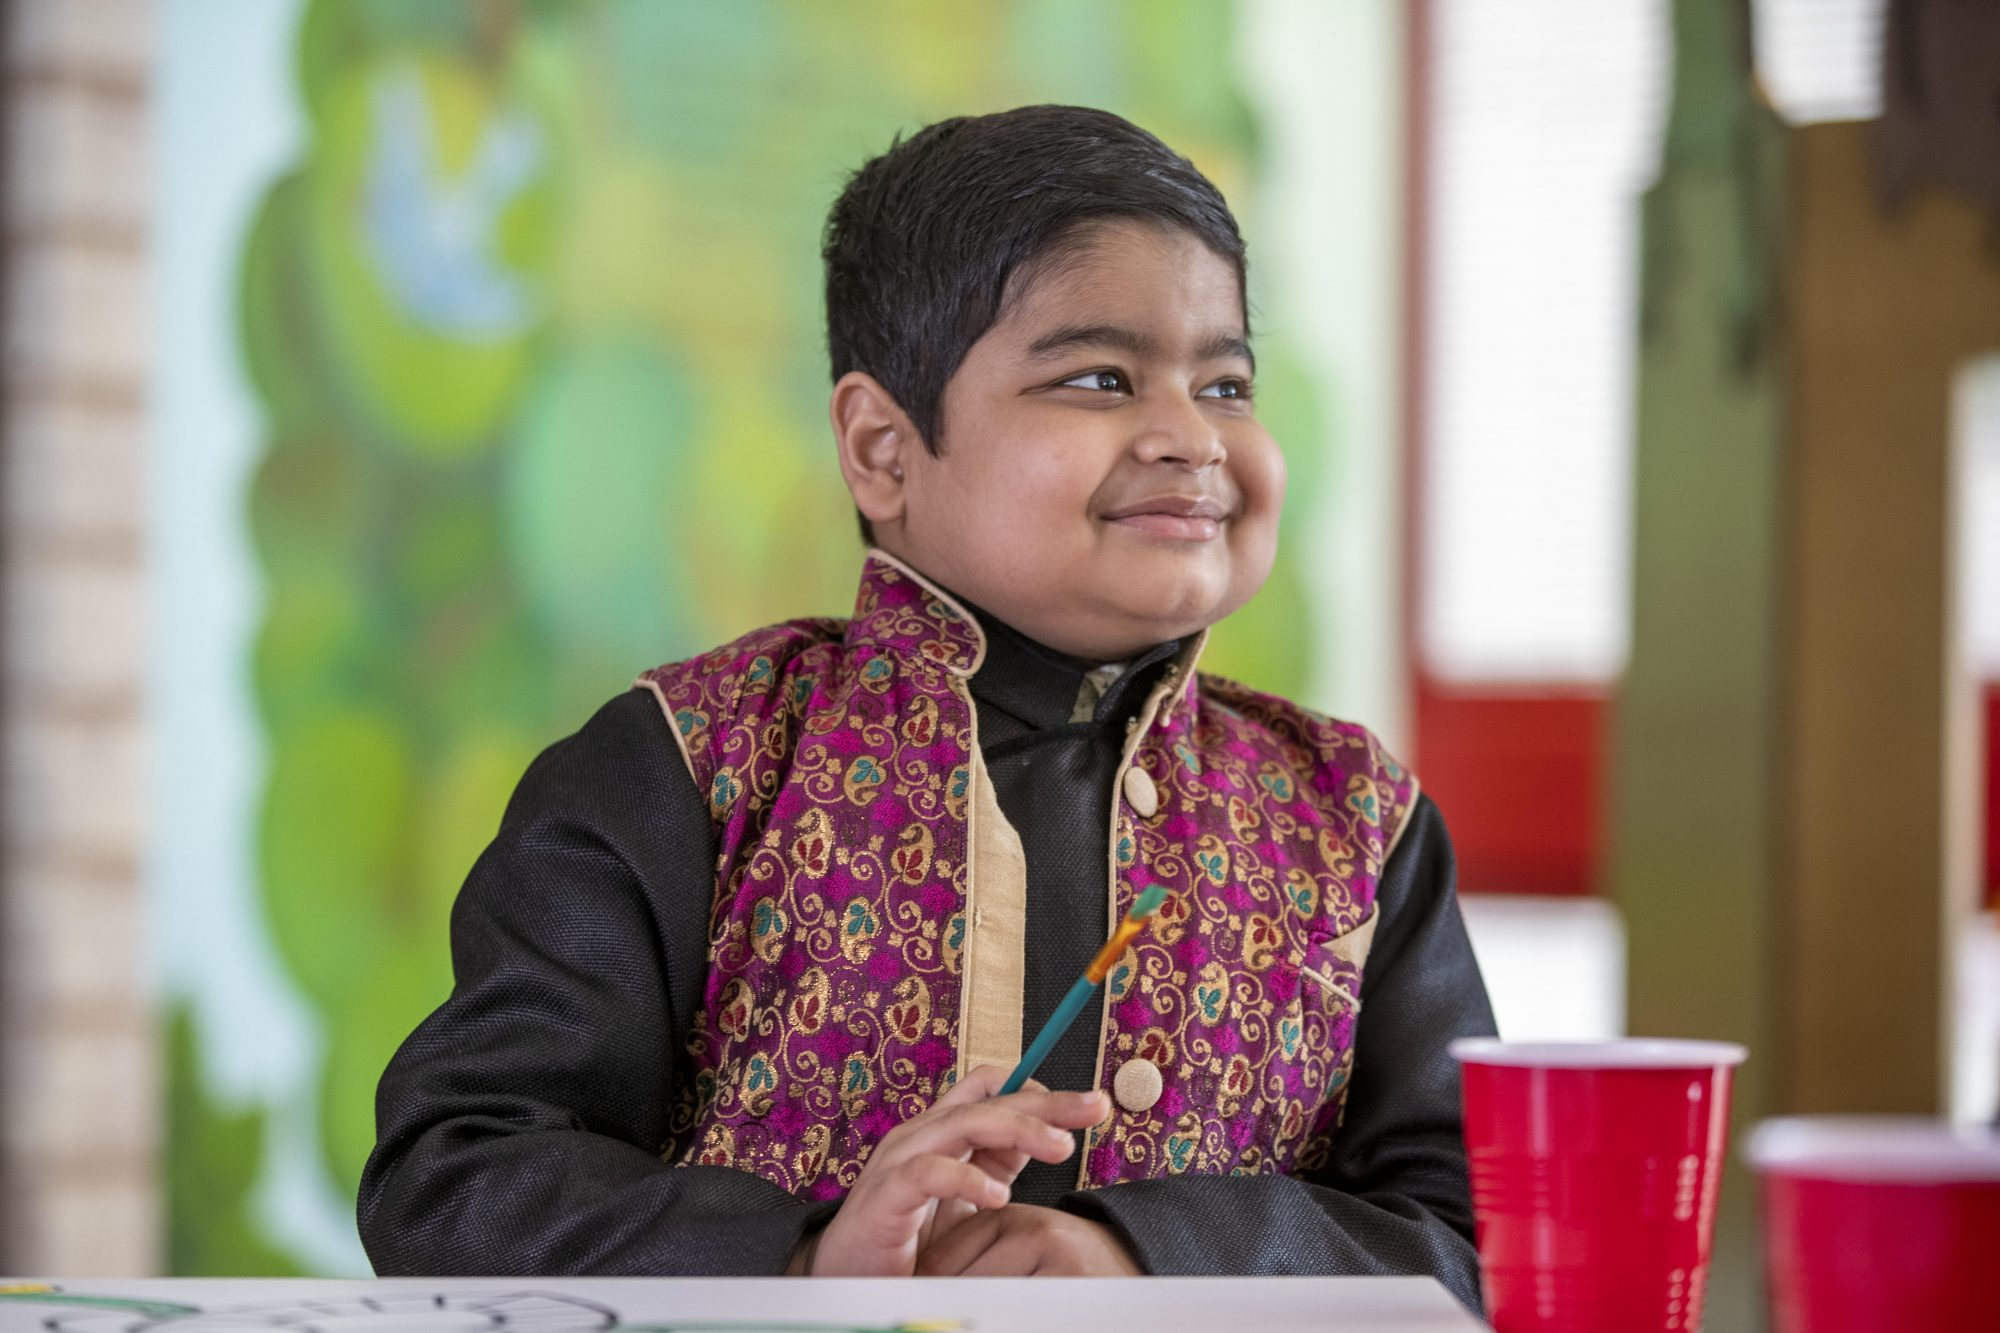 Allrecipes Cook to Follow: St. Jude patient Shaurya